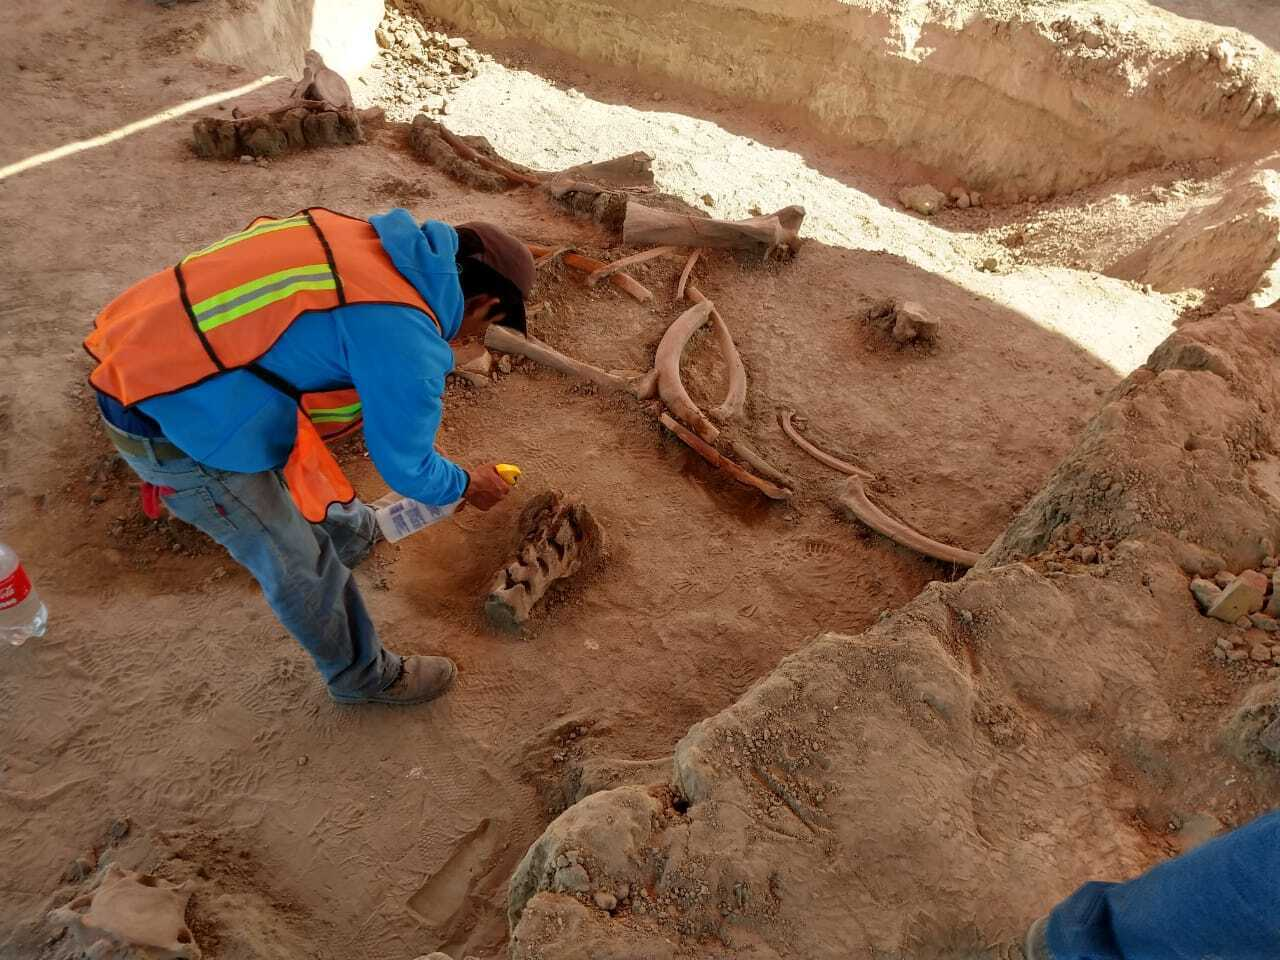 Archaeologists Unearth Remains of 60 Mammoths near Mexico City